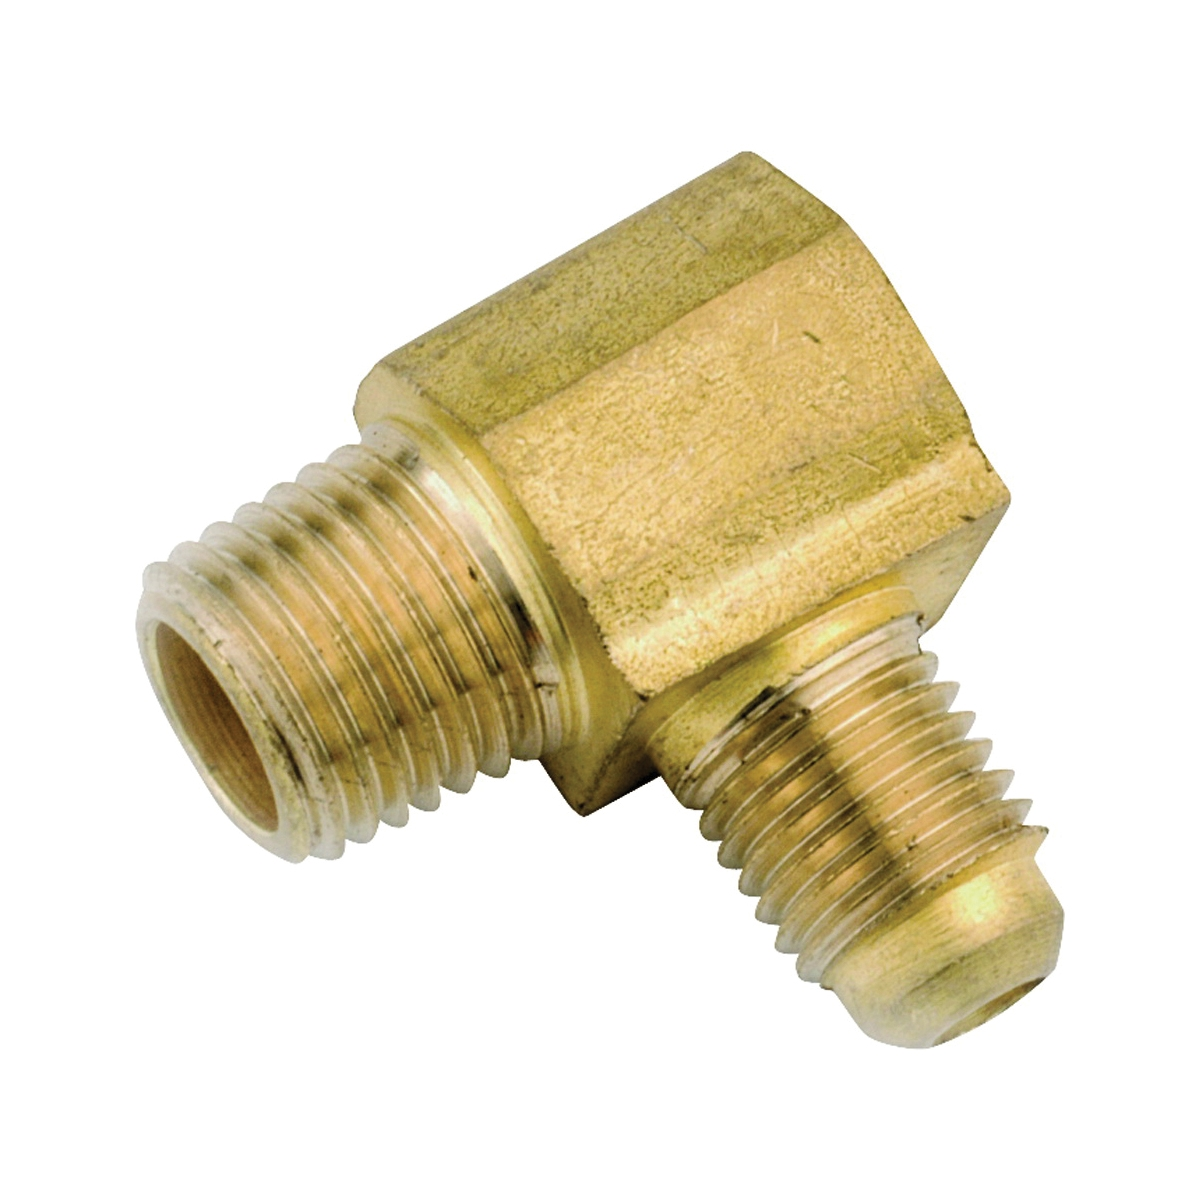 Picture of Anderson Metals 754049-0404 Tube Elbow, 1/4 in, 90 deg Angle, Lead-Free Brass, 1400 psi Pressure